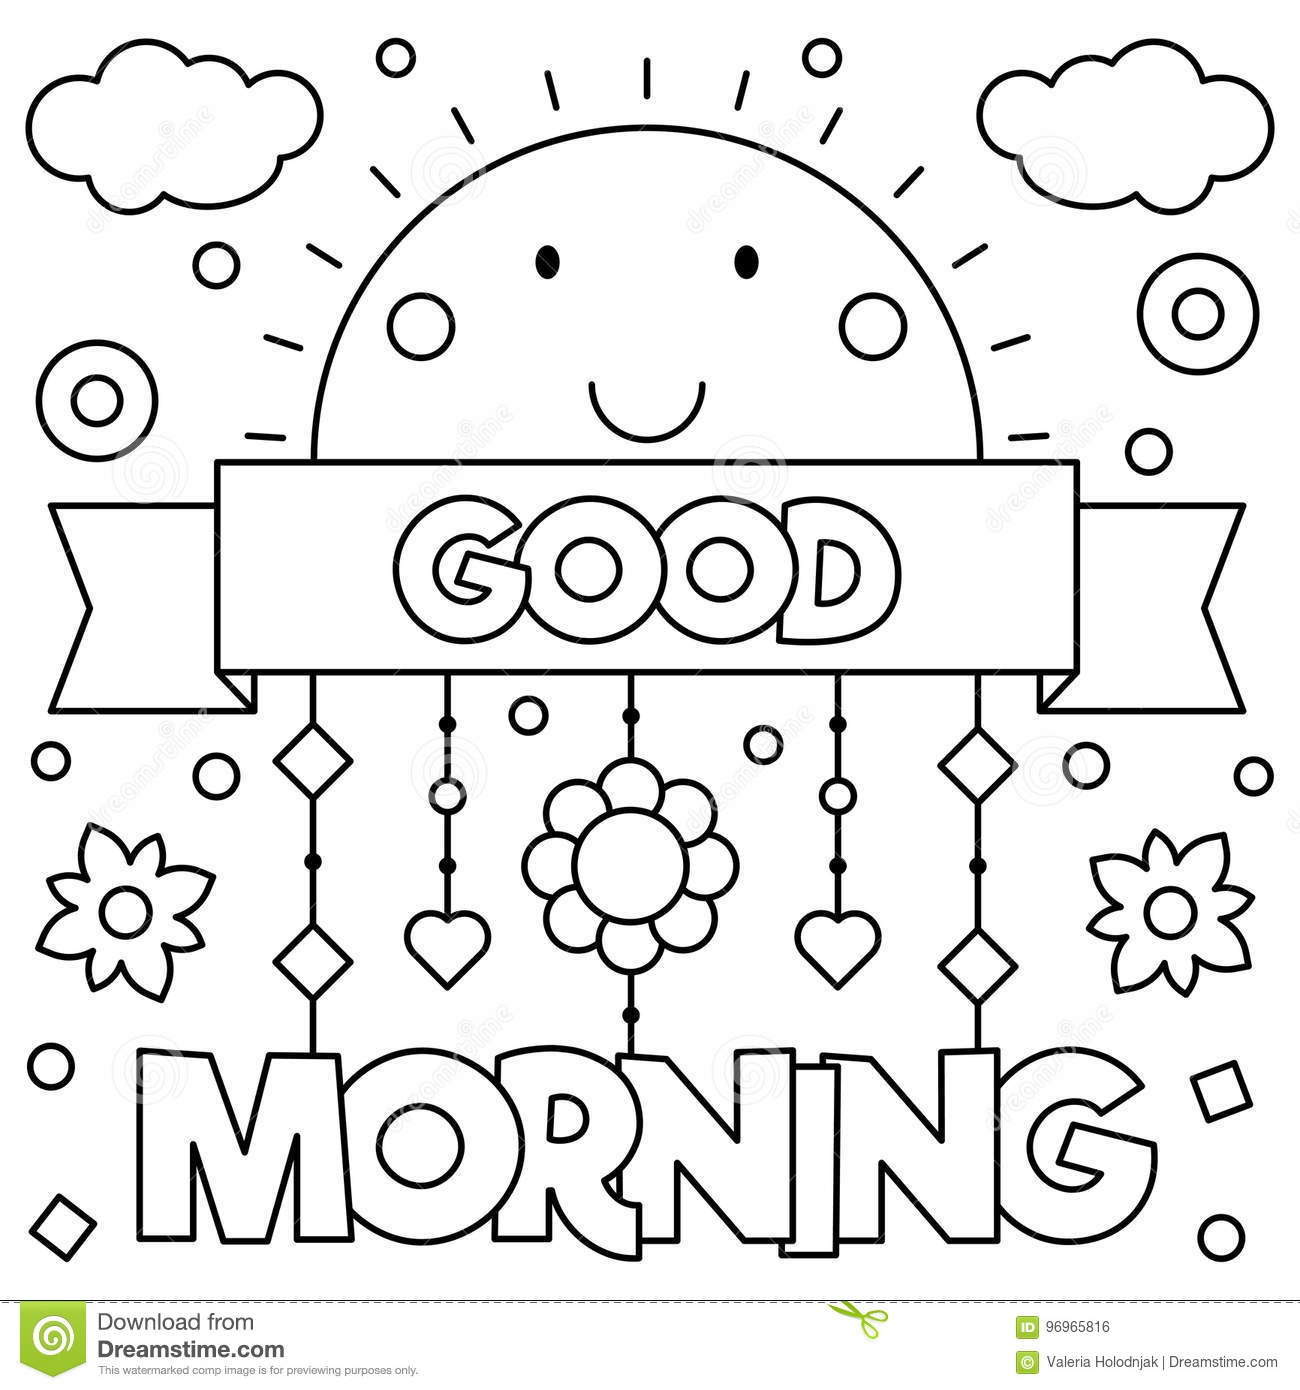 Good Morning Coloring Page Vector Illustration Stock